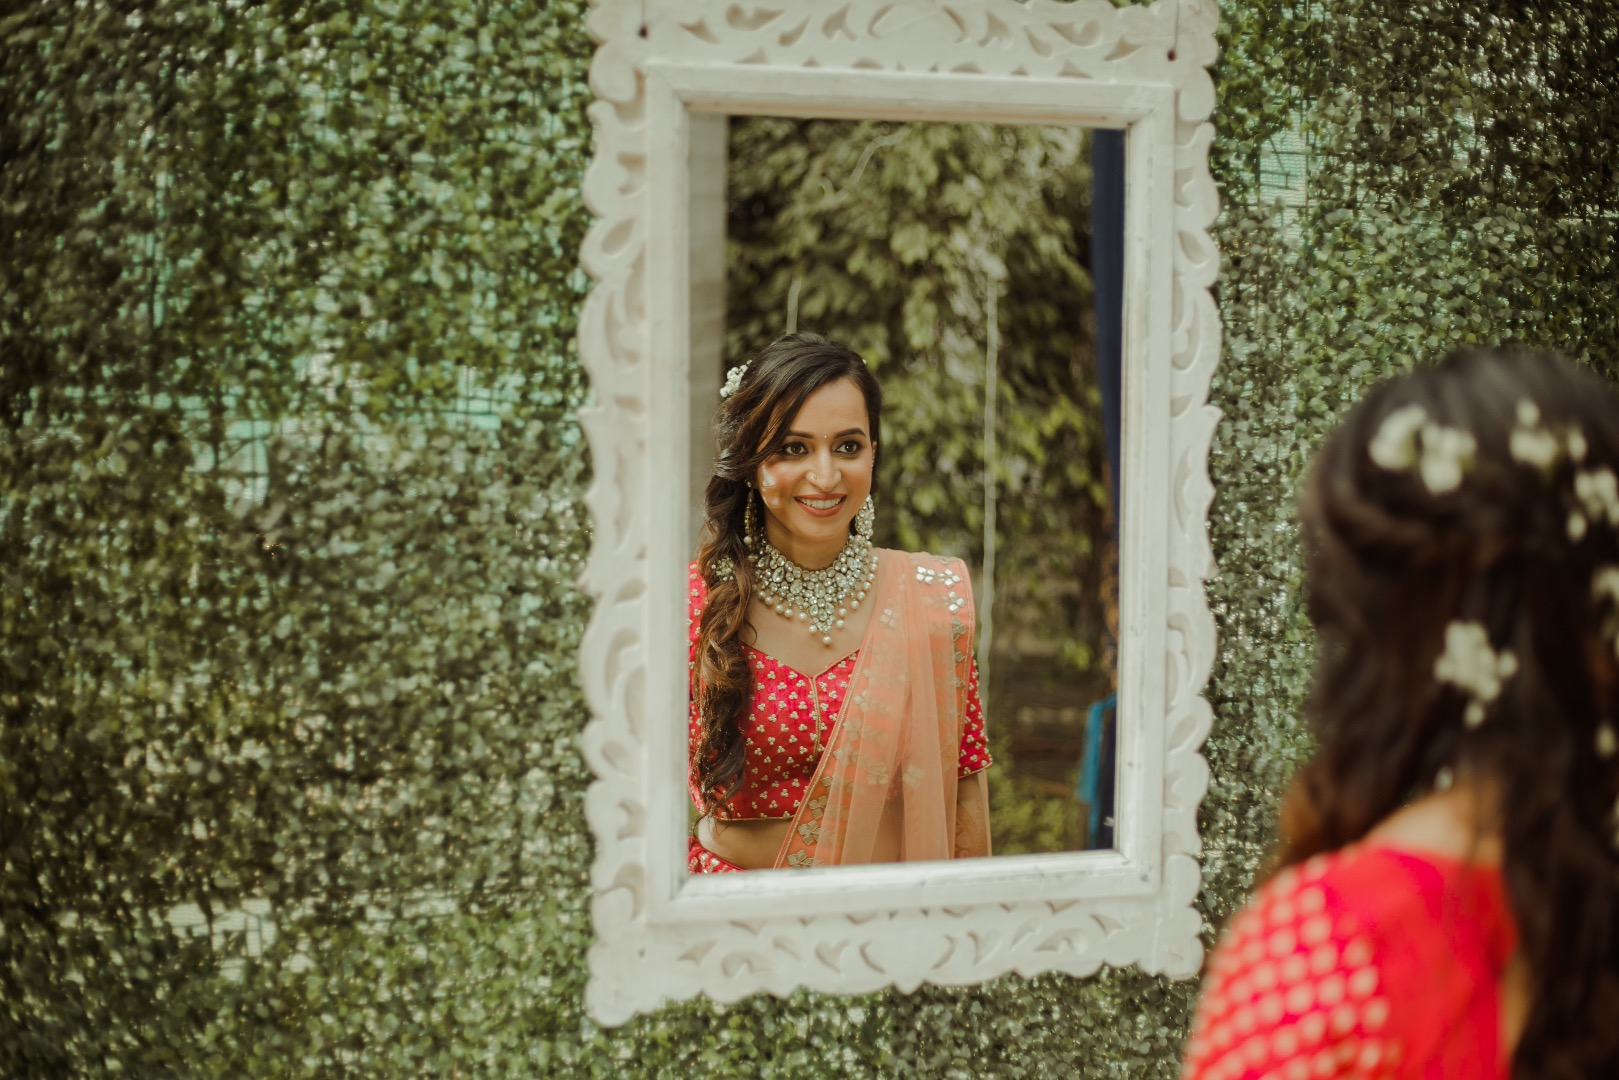 Mirror capture of the bride in pre-bridal photoshoot